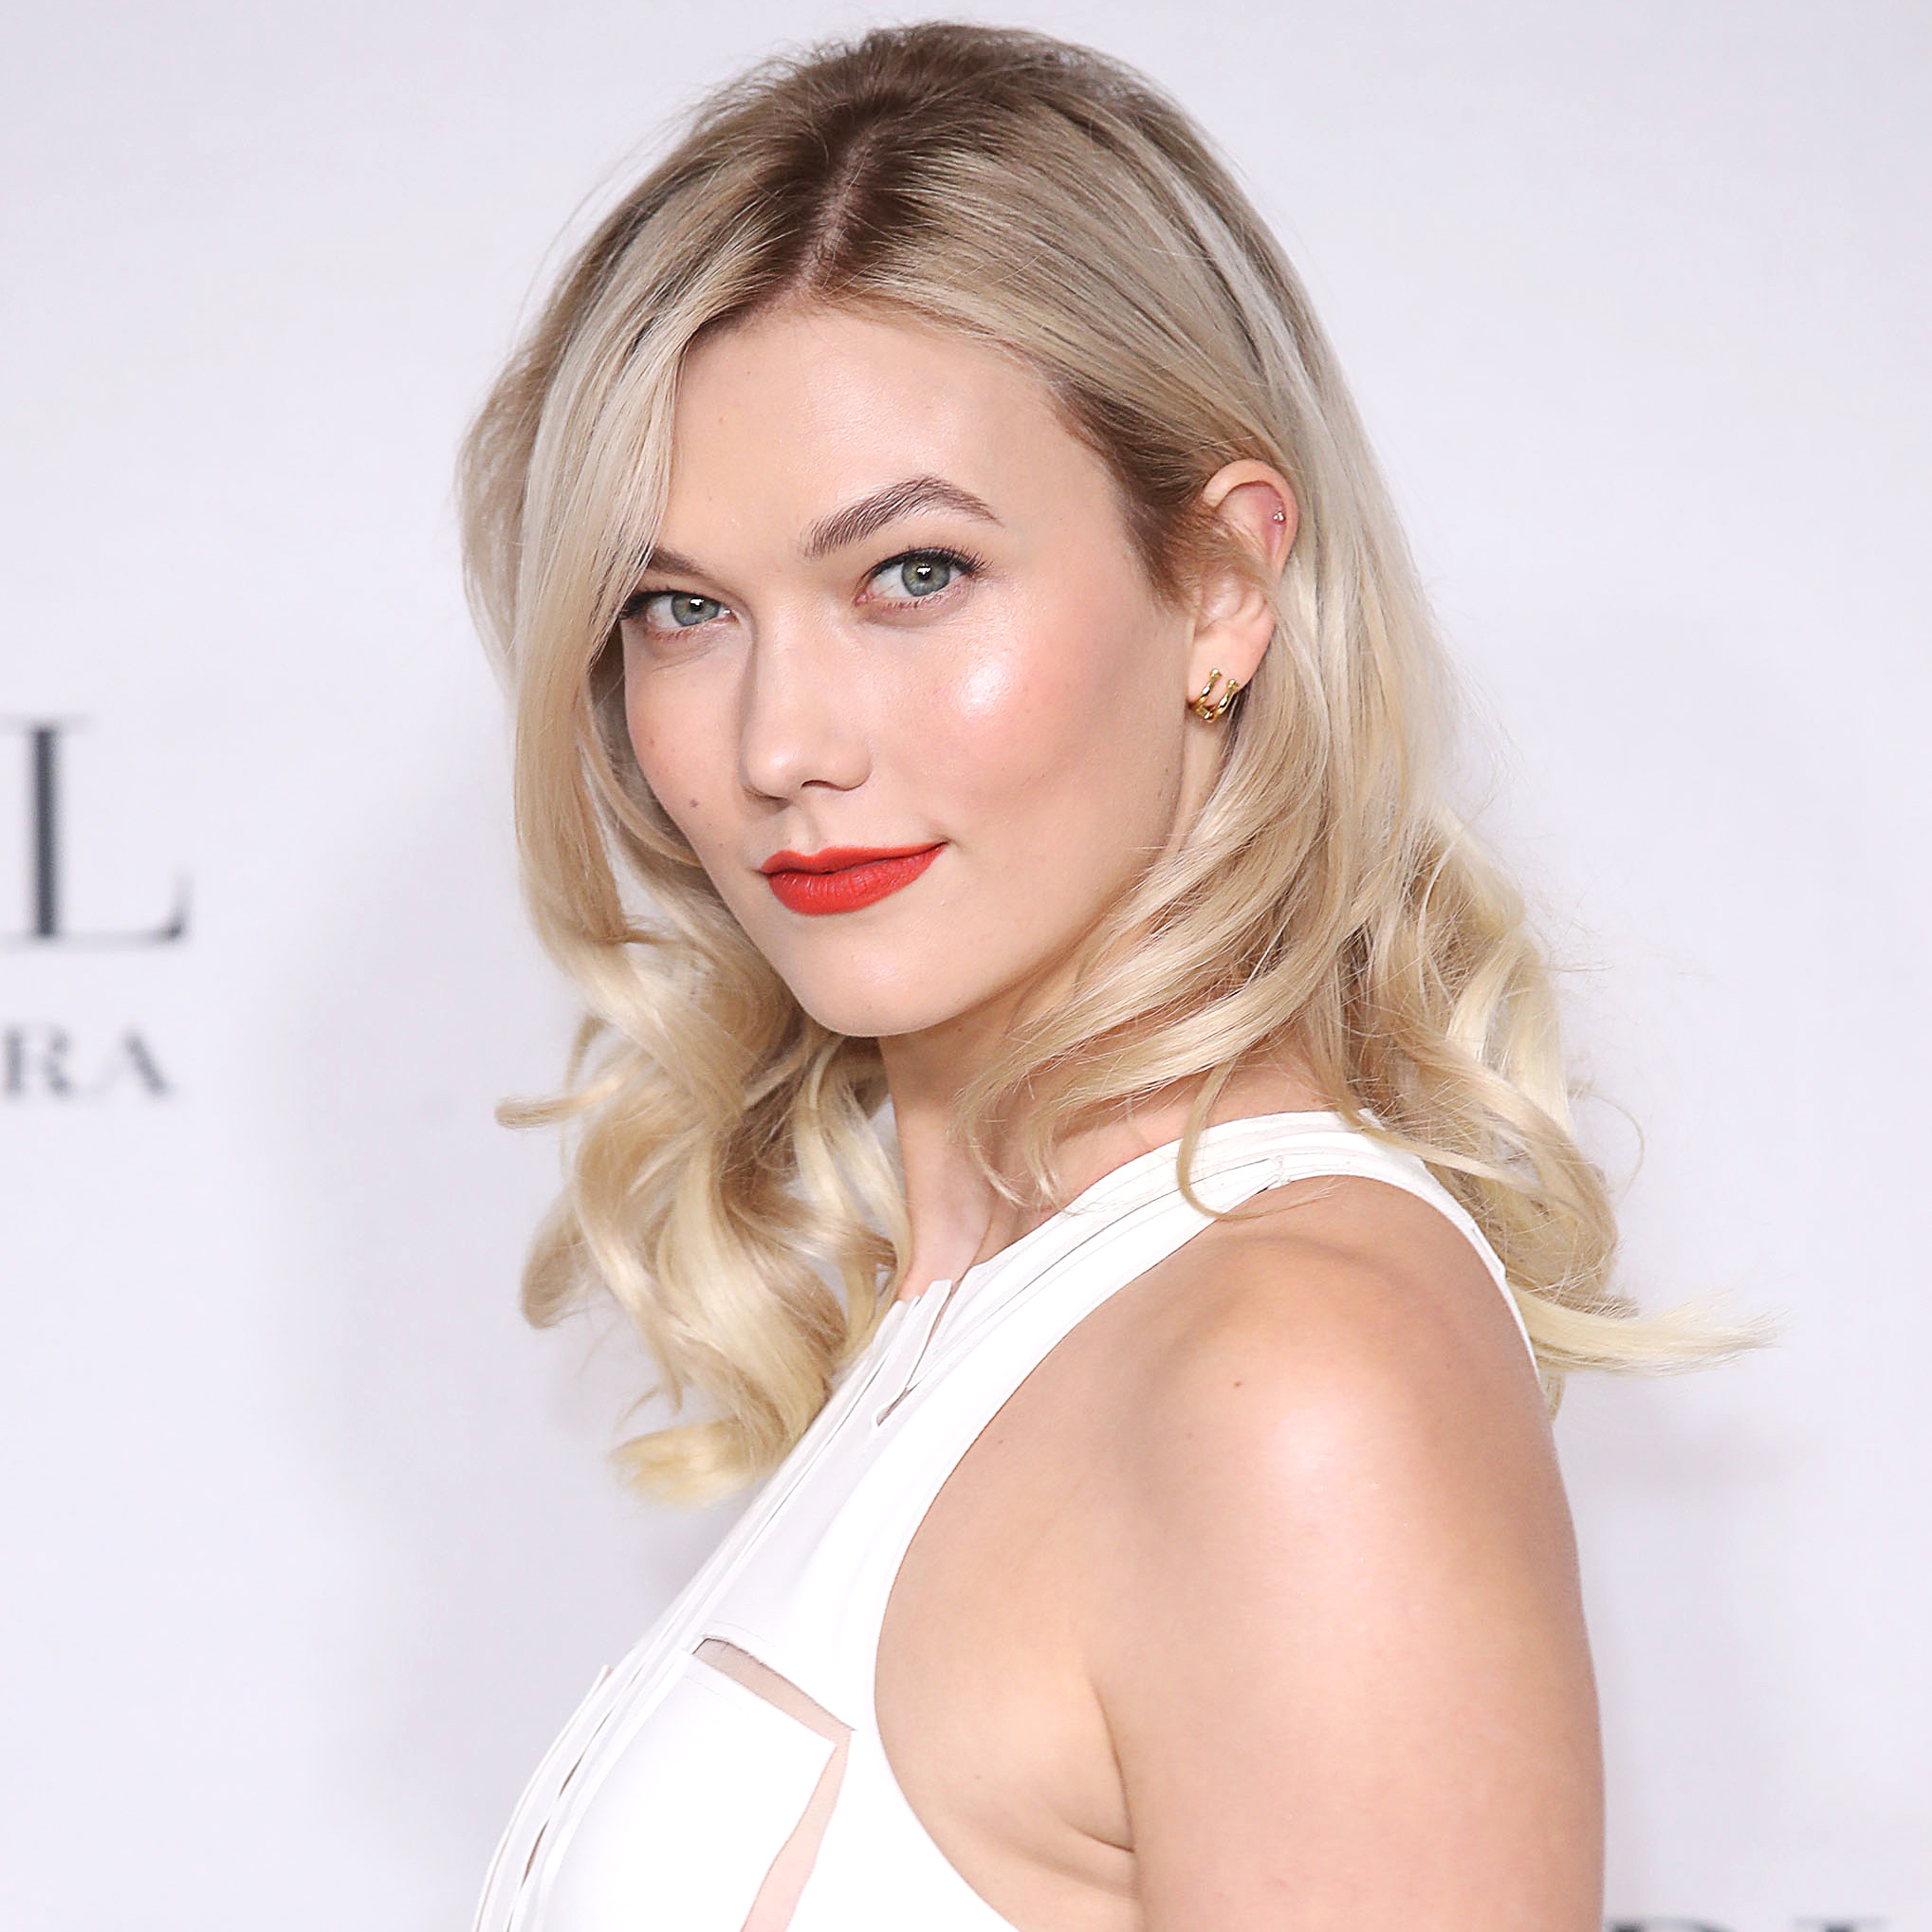 Karlie Kloss Created a Chic Luggage Collection Just in Time for Summer